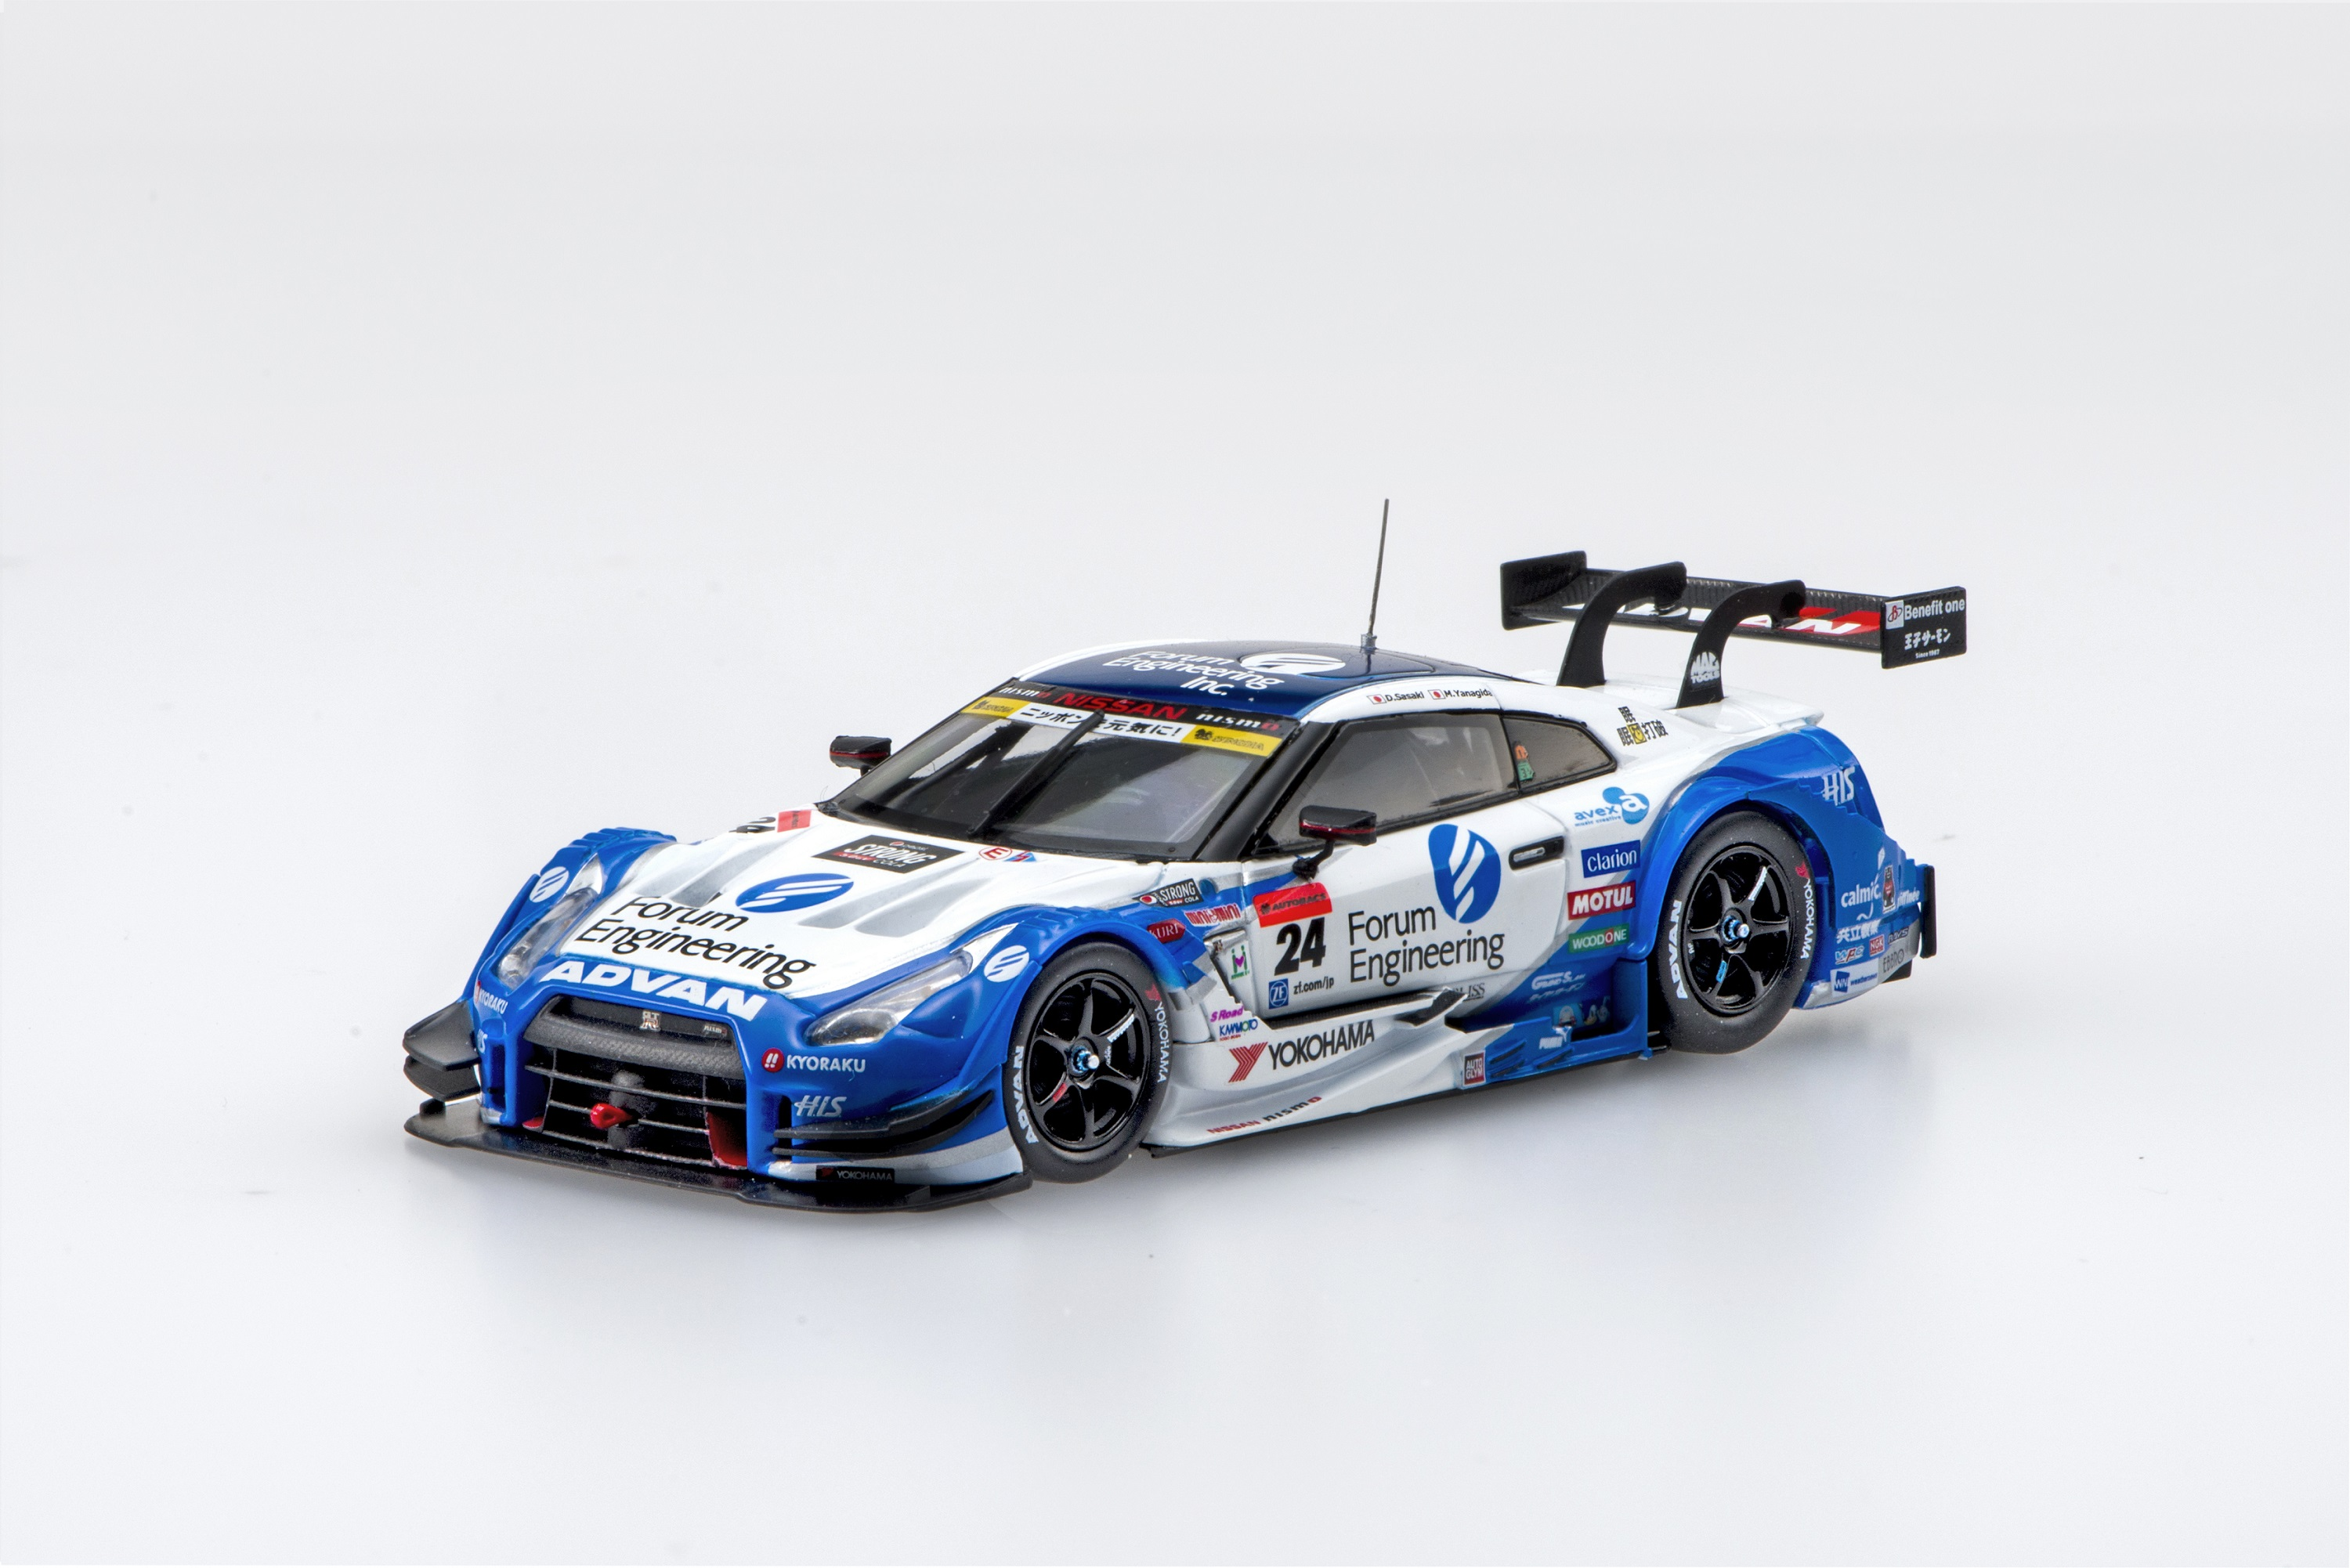 【45383】Forum Engineering ADVAN GT-R SUPER GT GT500 2016 Rd.4 Sugo Winner No.24